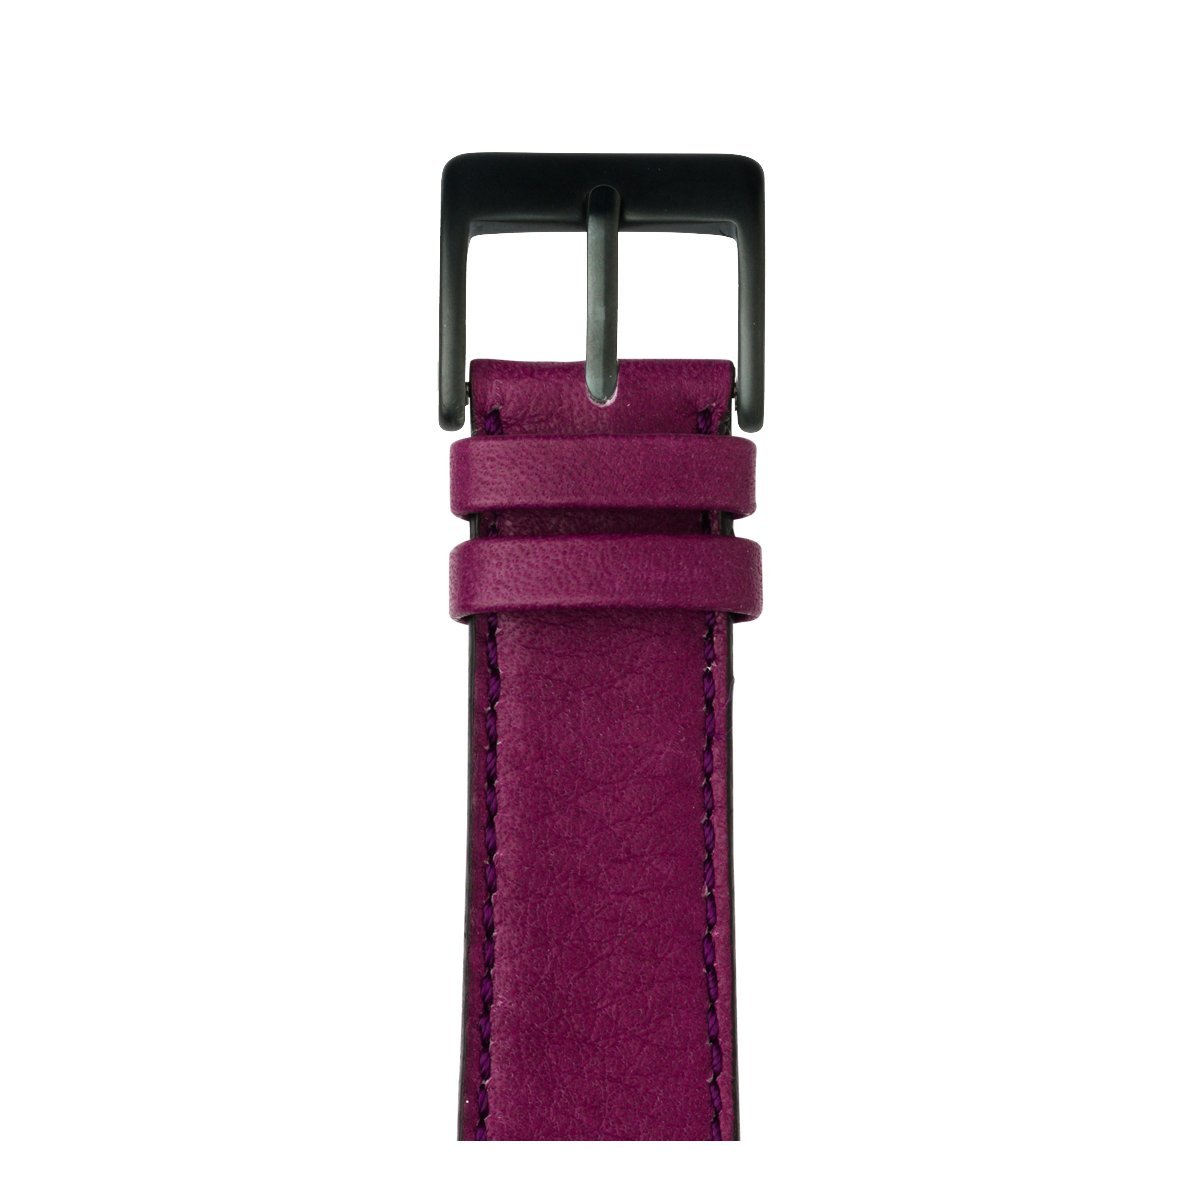 Roobaya | Premium Sauvage Leather Apple Watch Band in Purple | Includes Adapters matching the Color of the Apple Watch, Case Color:Space Gray Aluminum, Size:38 mm